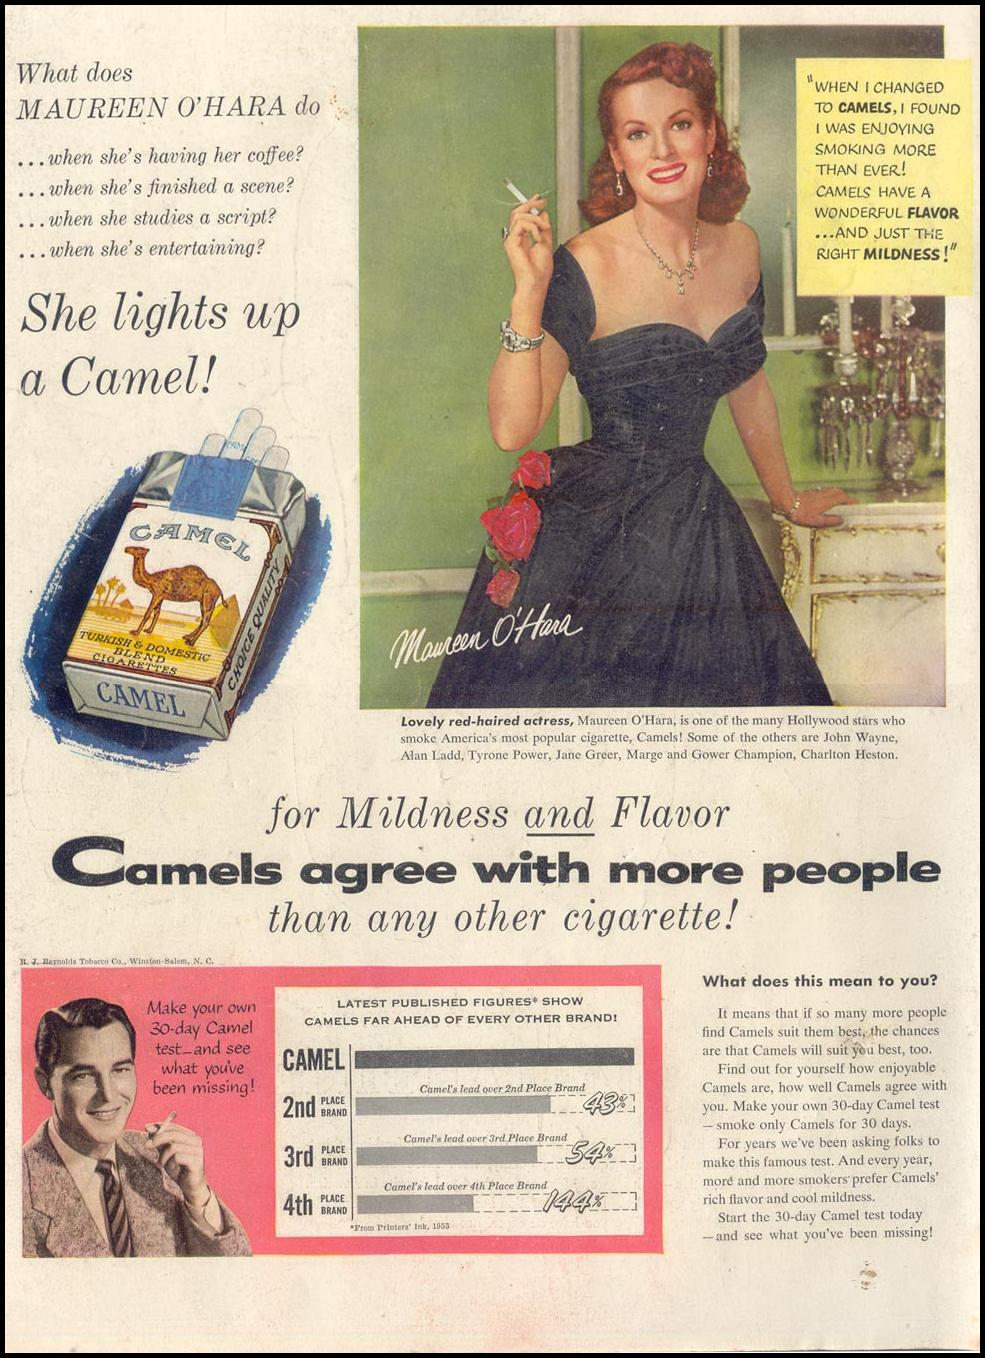 CAMEL CIGARETTES LIFE 09/07/1953 BACK COVER